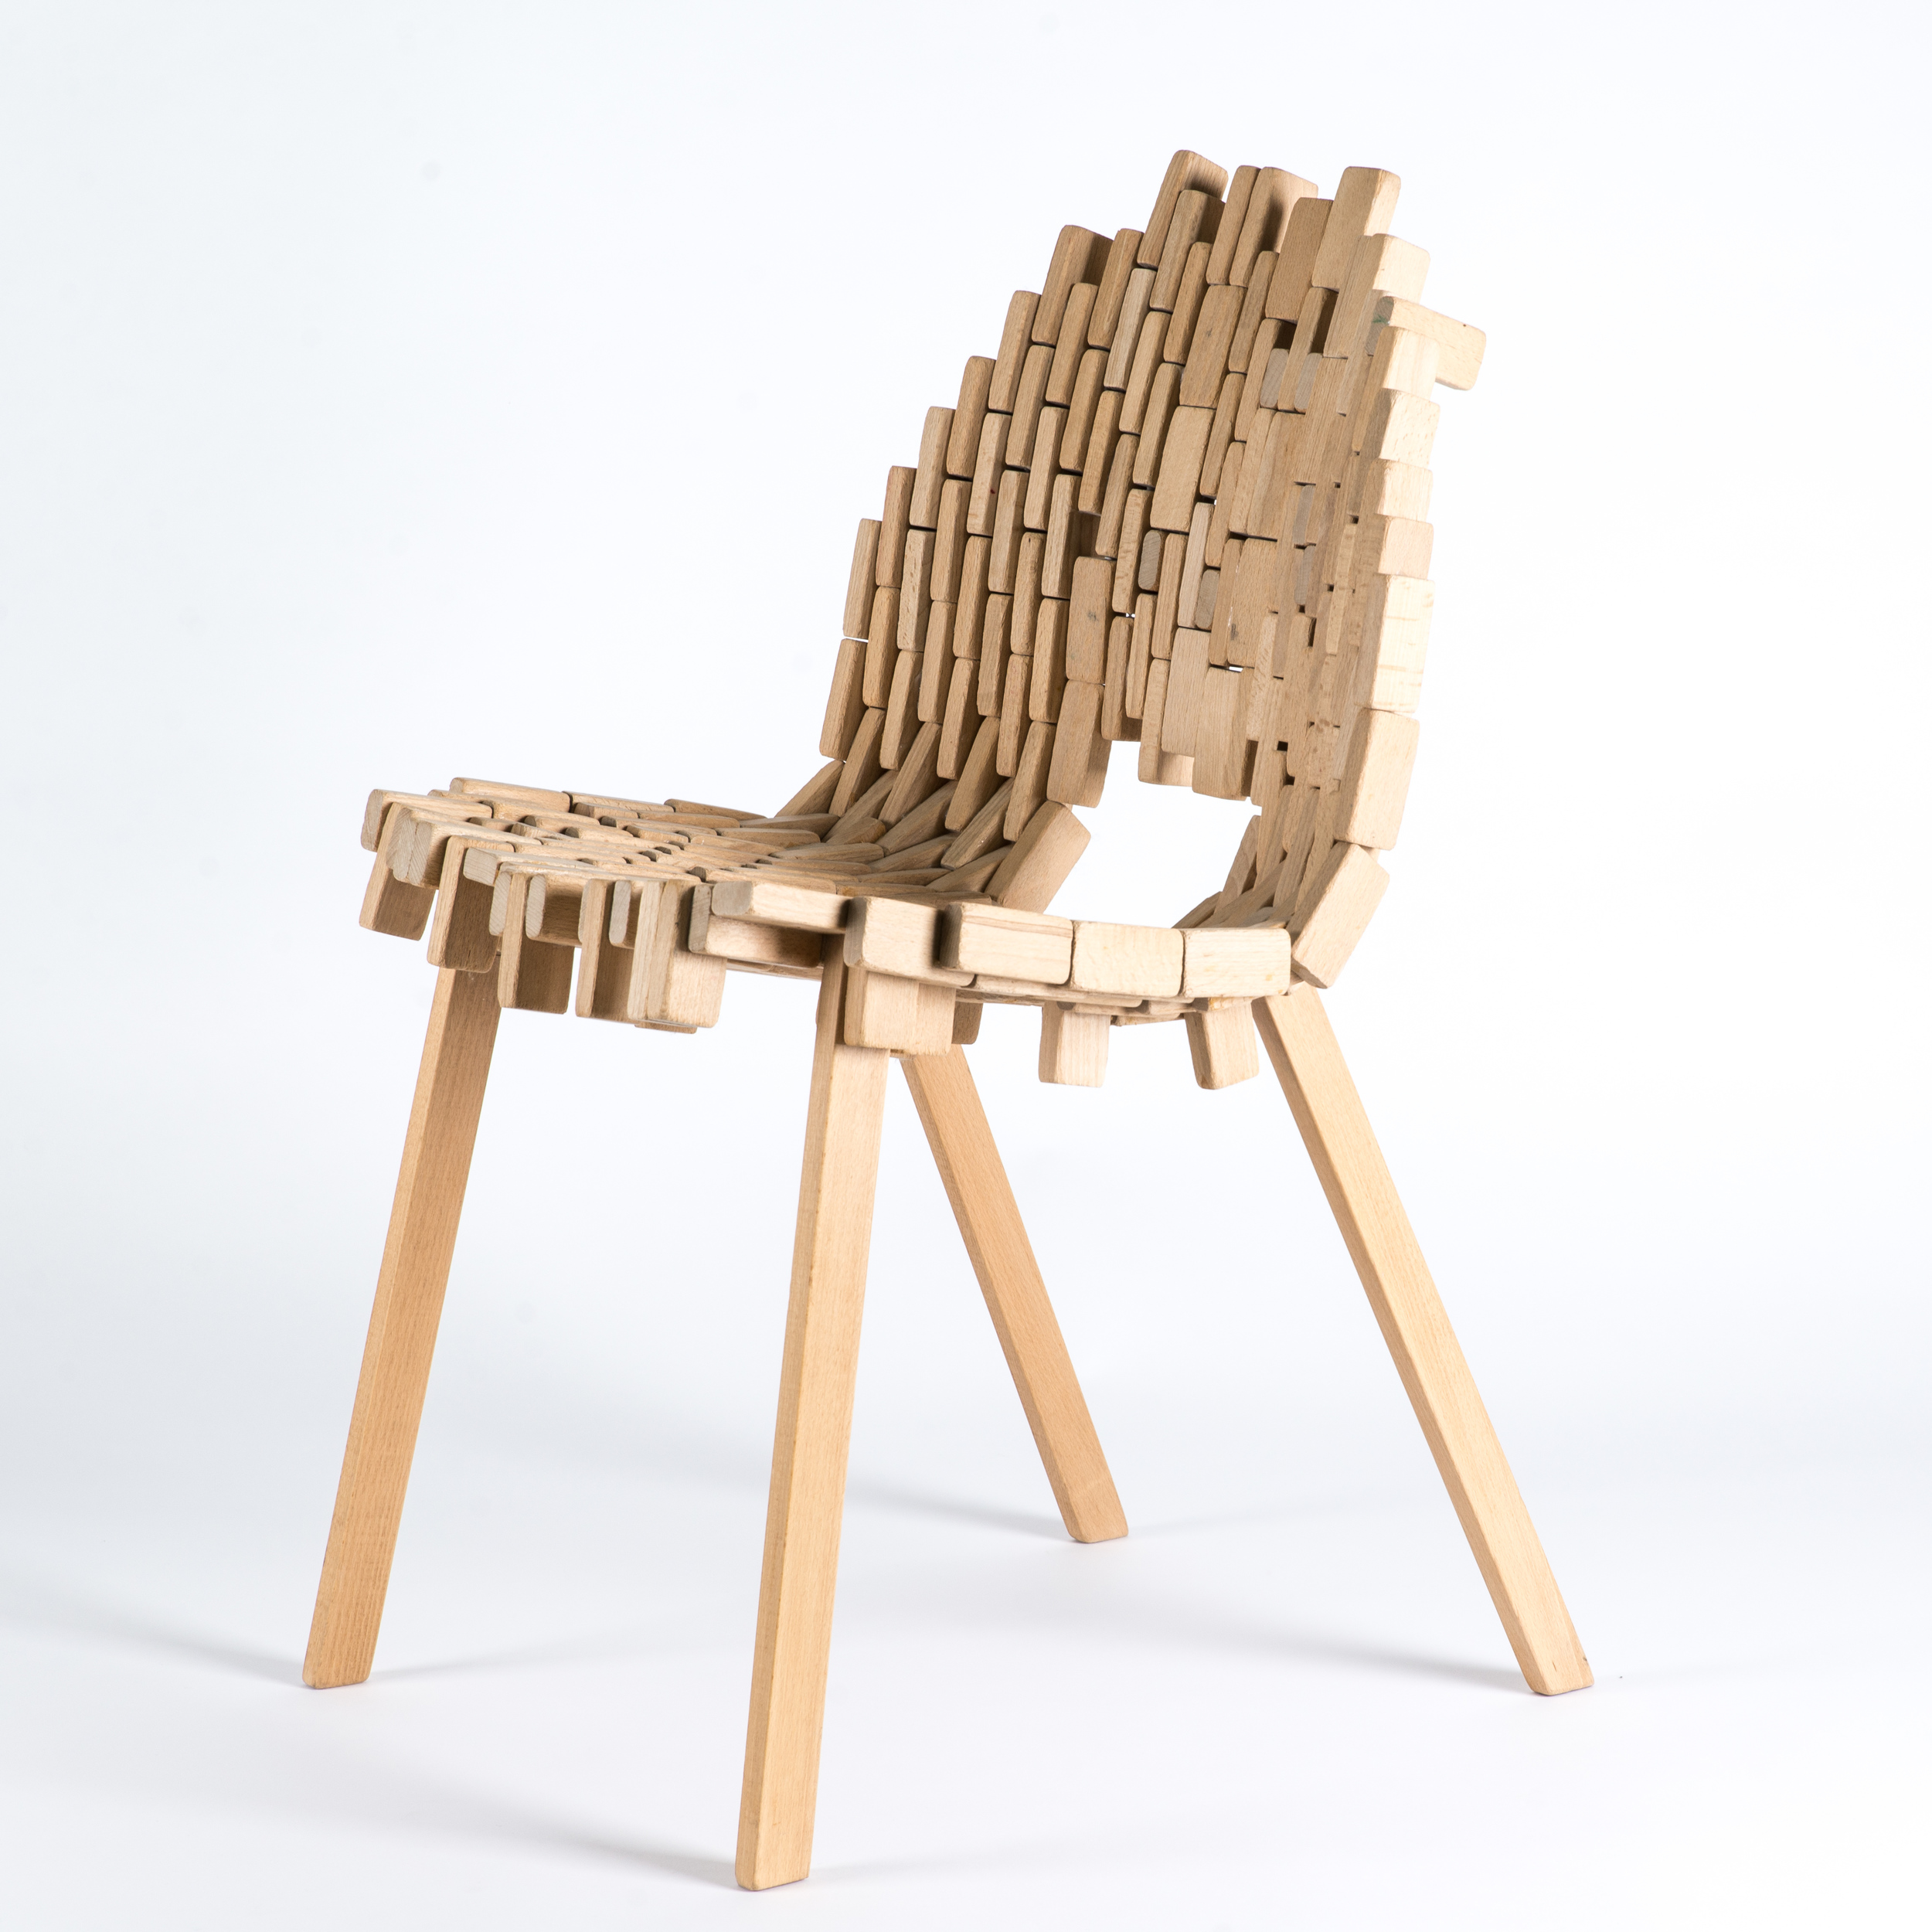 Bricks-chair-02.jpg